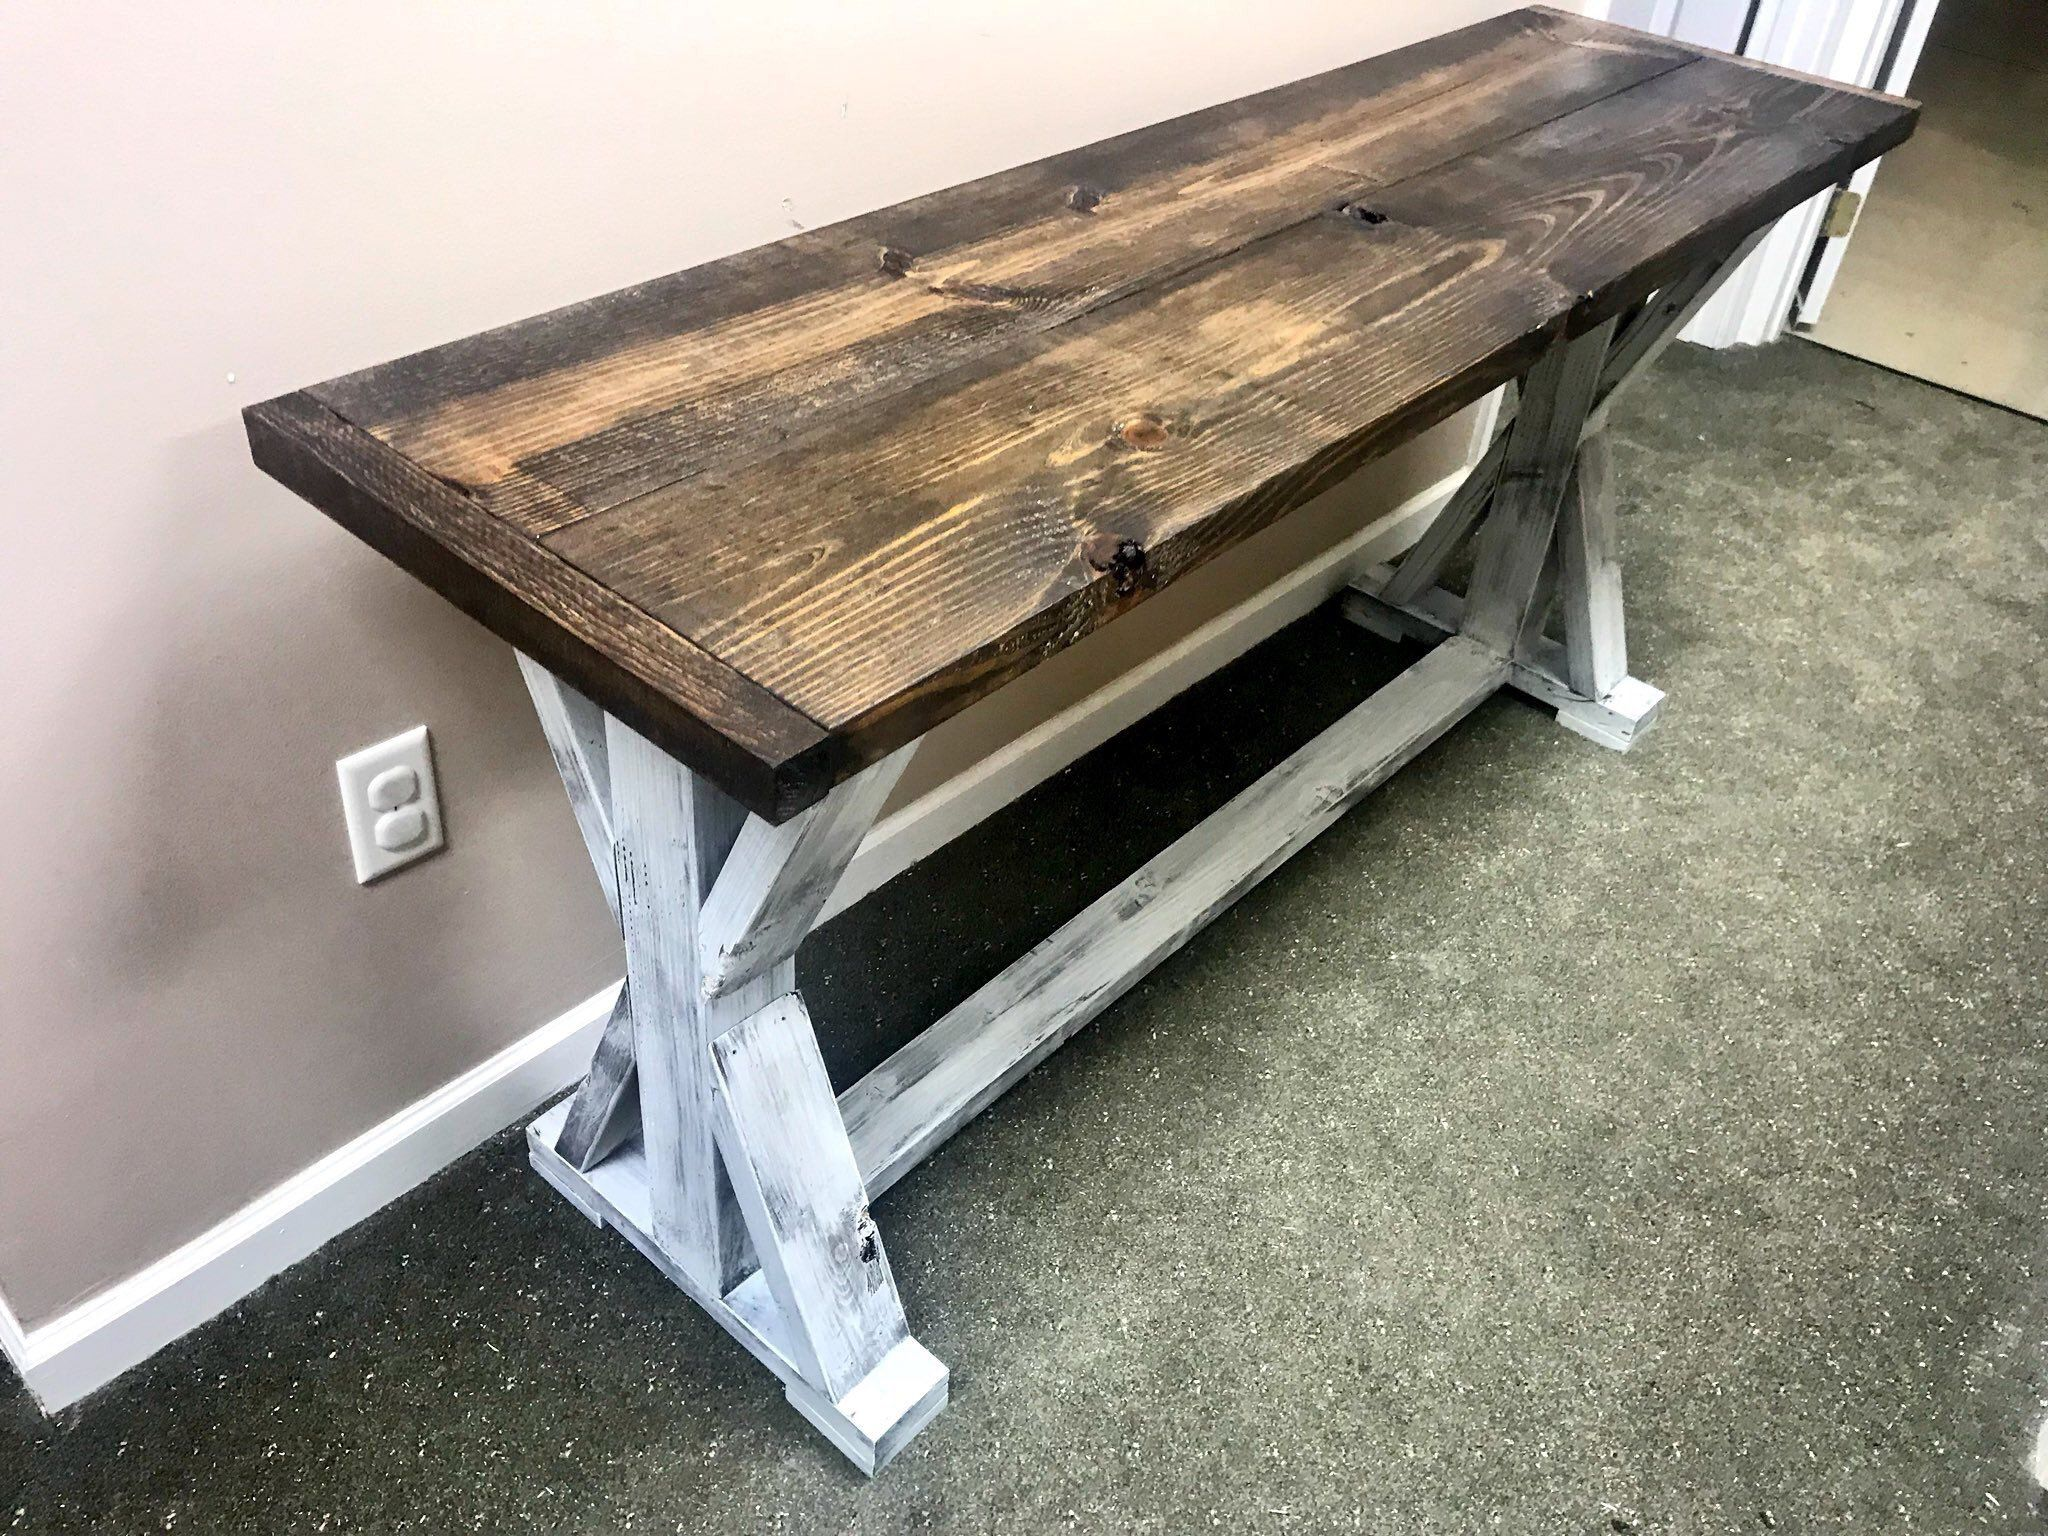 Rustic Console Table Farmhouse Pedestal Entryway Table With Dark Walnut Top And Distressed White Base Handmade Buffet Rustic Console Tables Rustic Consoles Entryway Tables